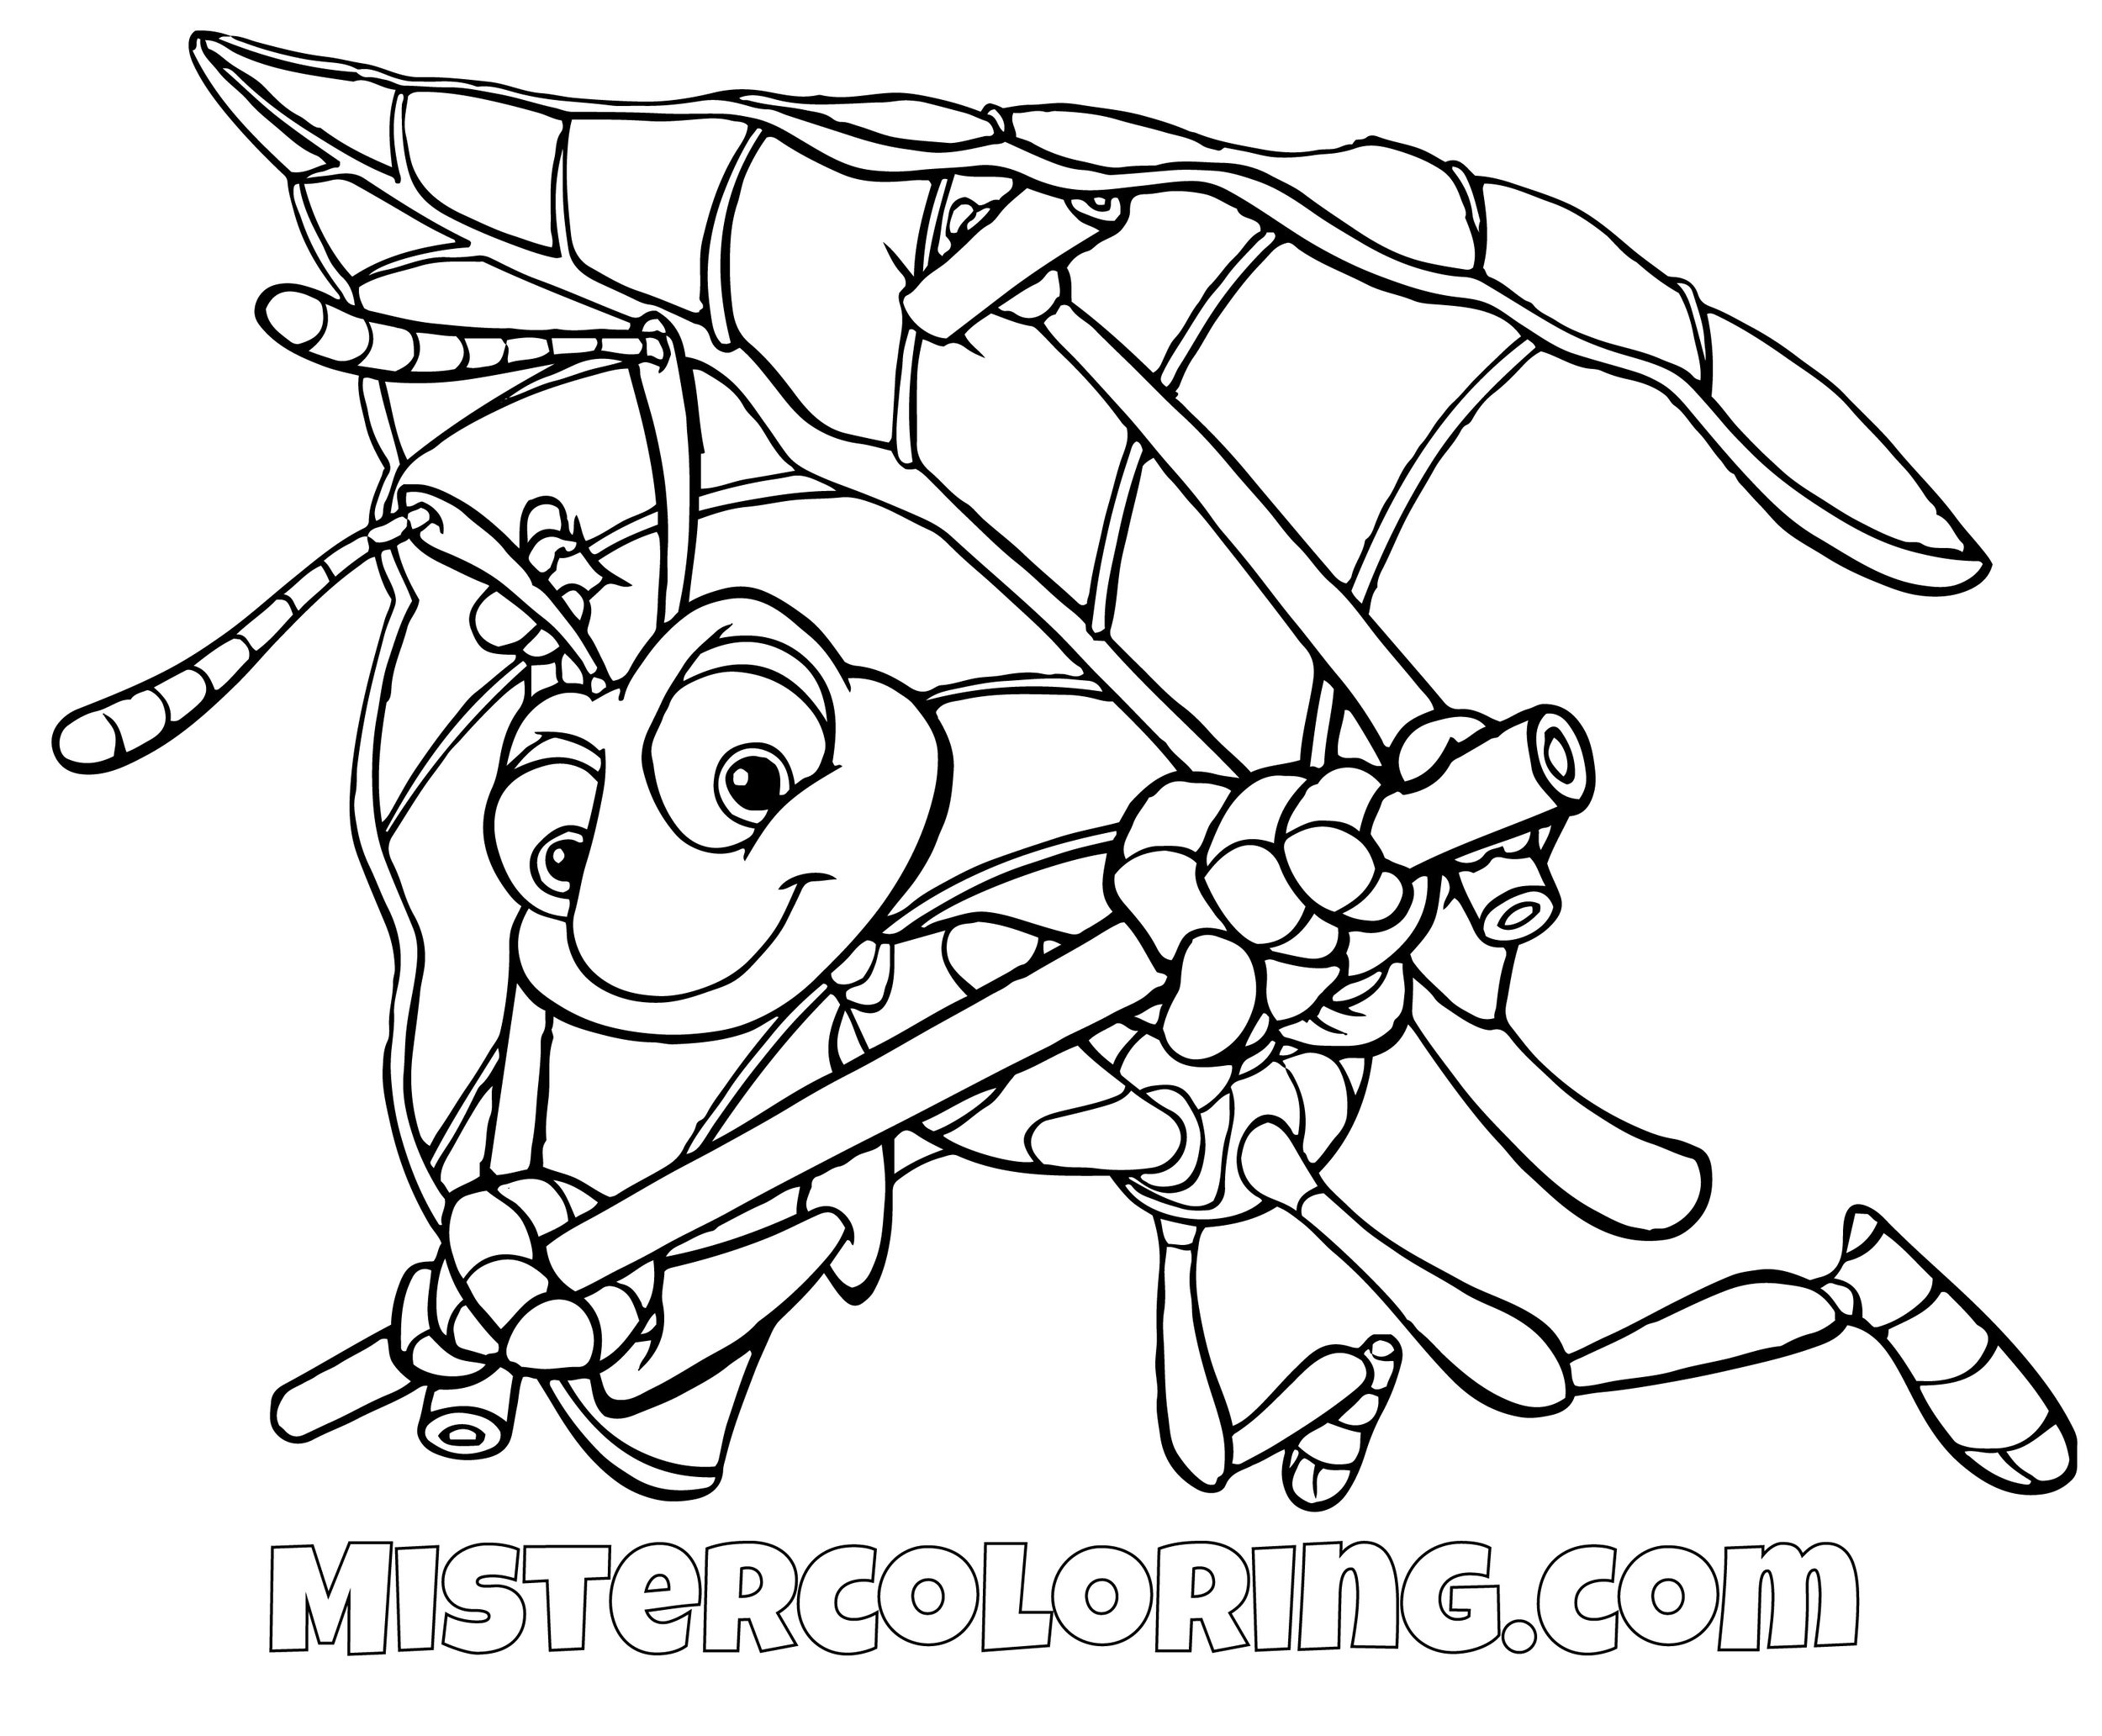 Flick Flying With Leaf A Bugs Life Coloring Page